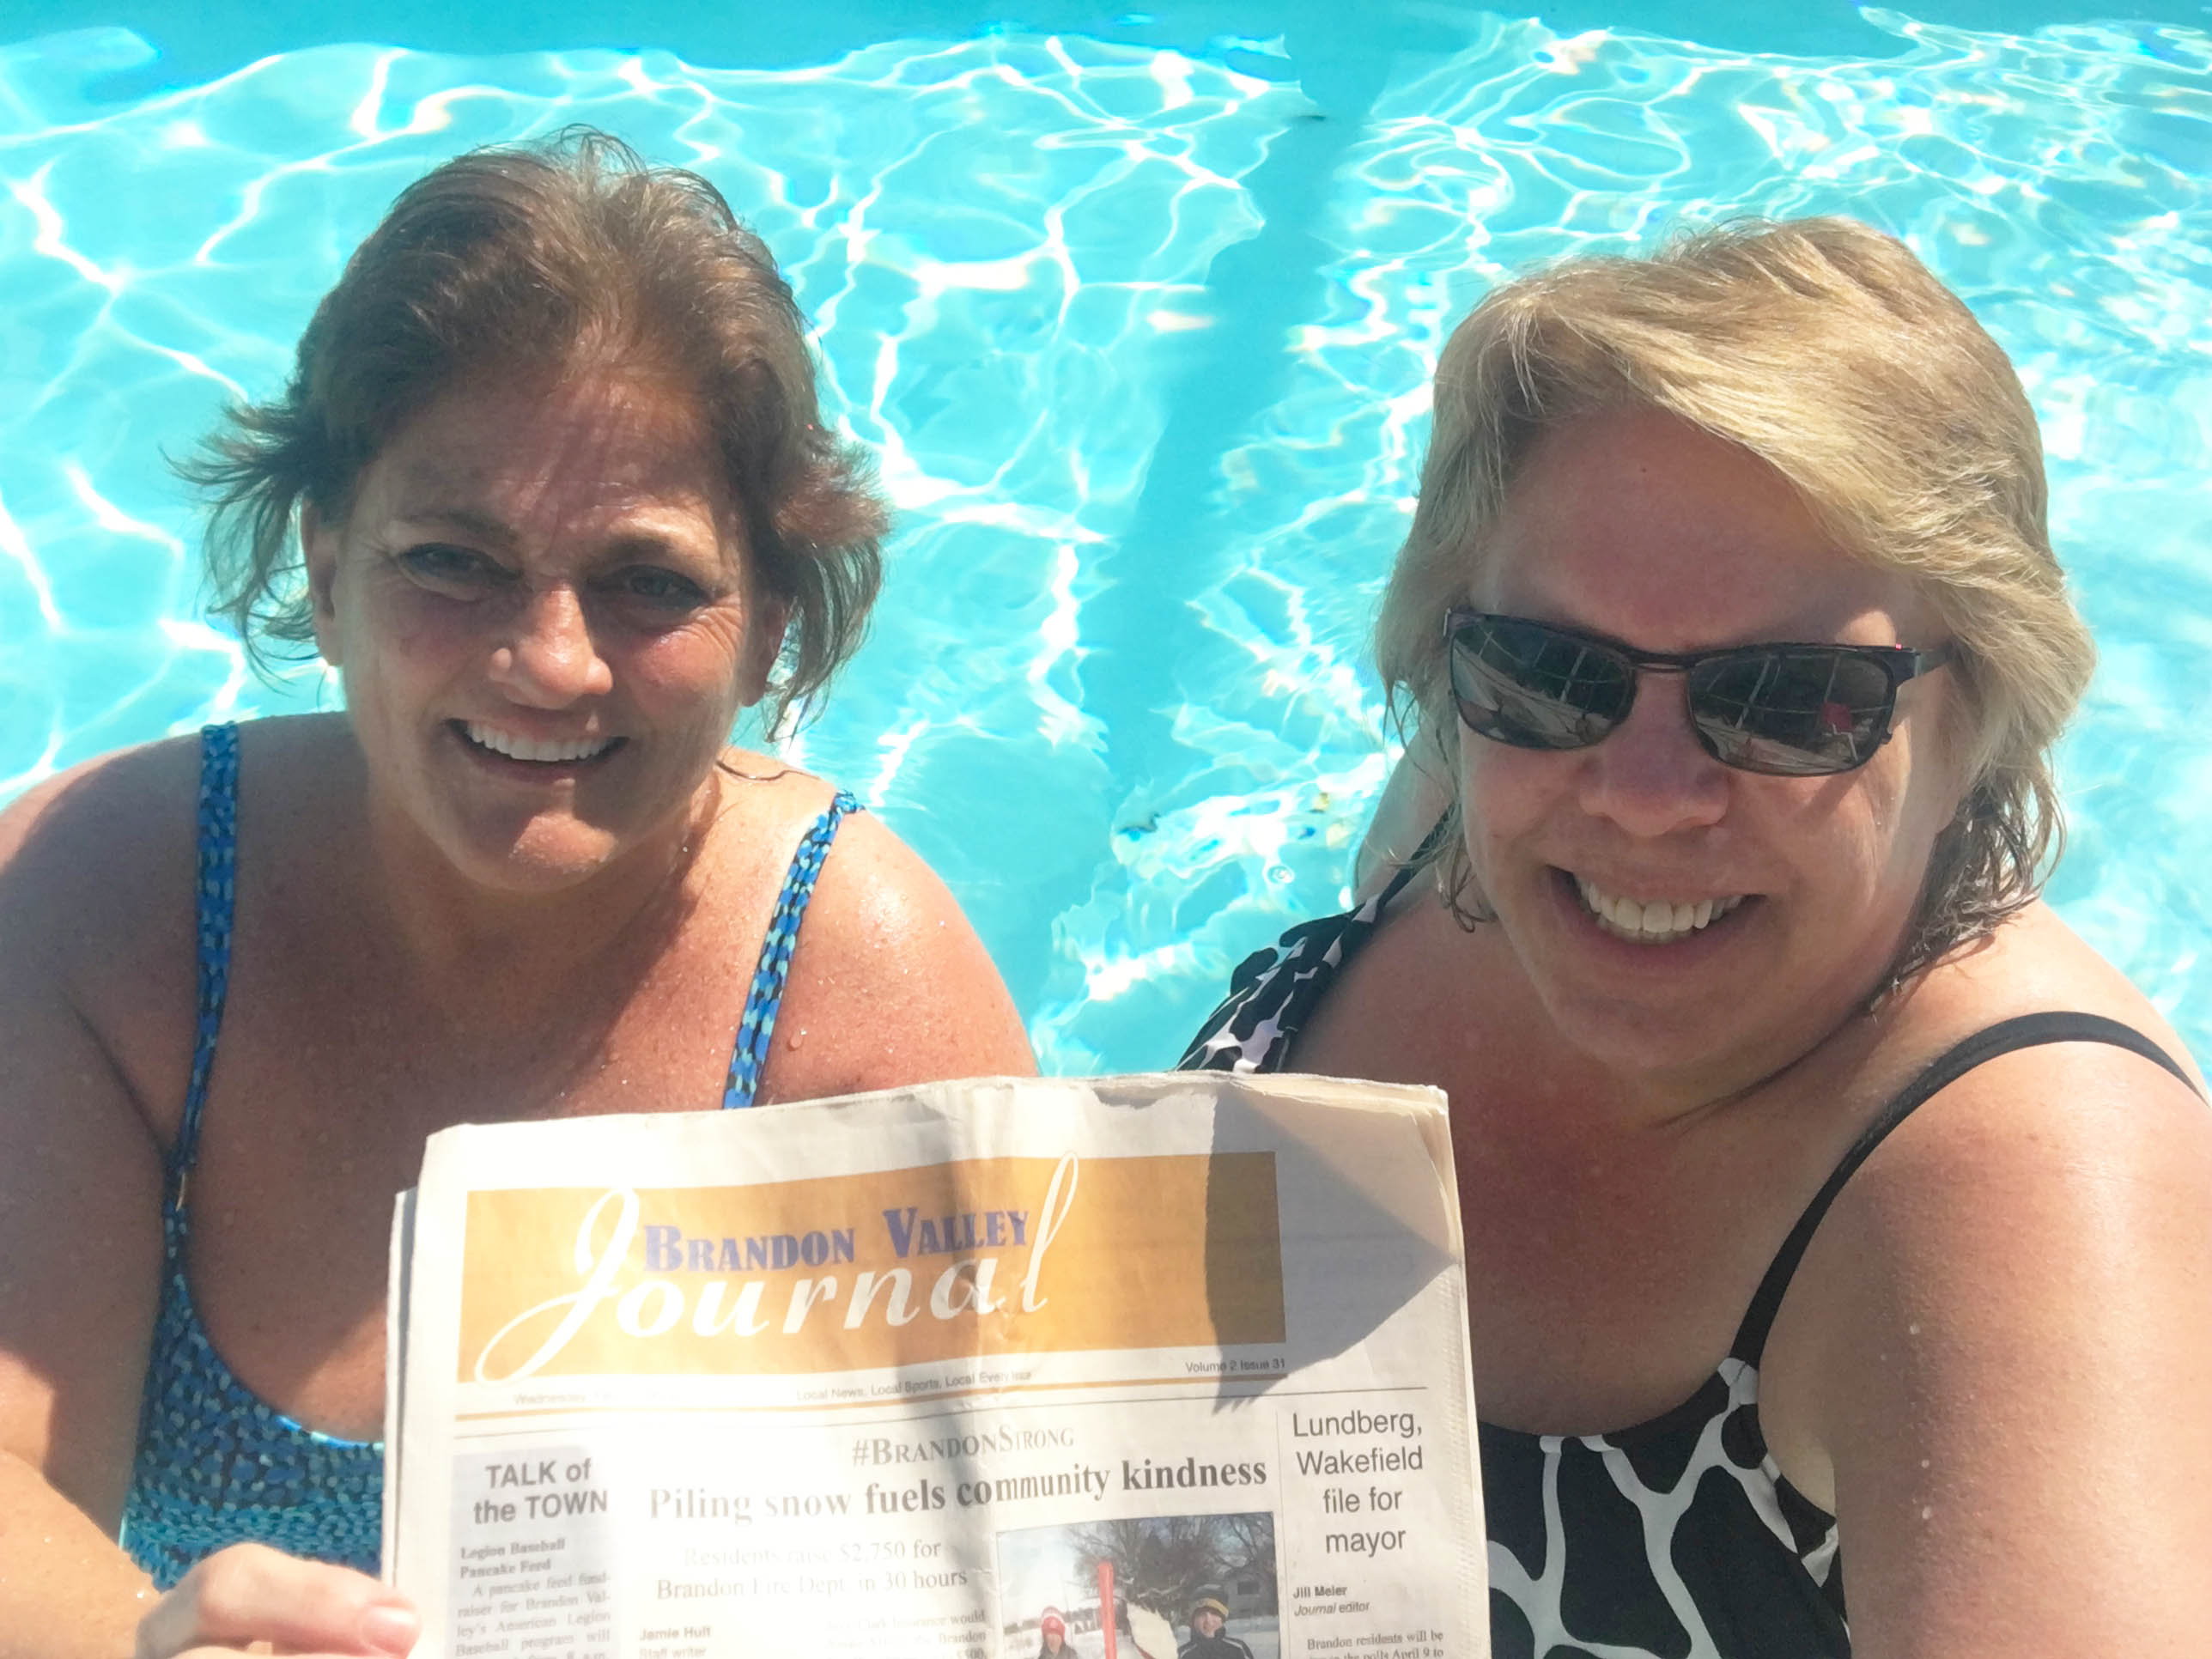 "<span class=""s1""><i>BV Journal </i>editor Jill Meier exchanged the South Dakota cold for Florida sunshine last week. The group of gals, including Holly Davis of Sioux Falls, enjoyed some pool time while their friends made a run to the grocery store. <strong>Submitted photo</strong></span>*/"